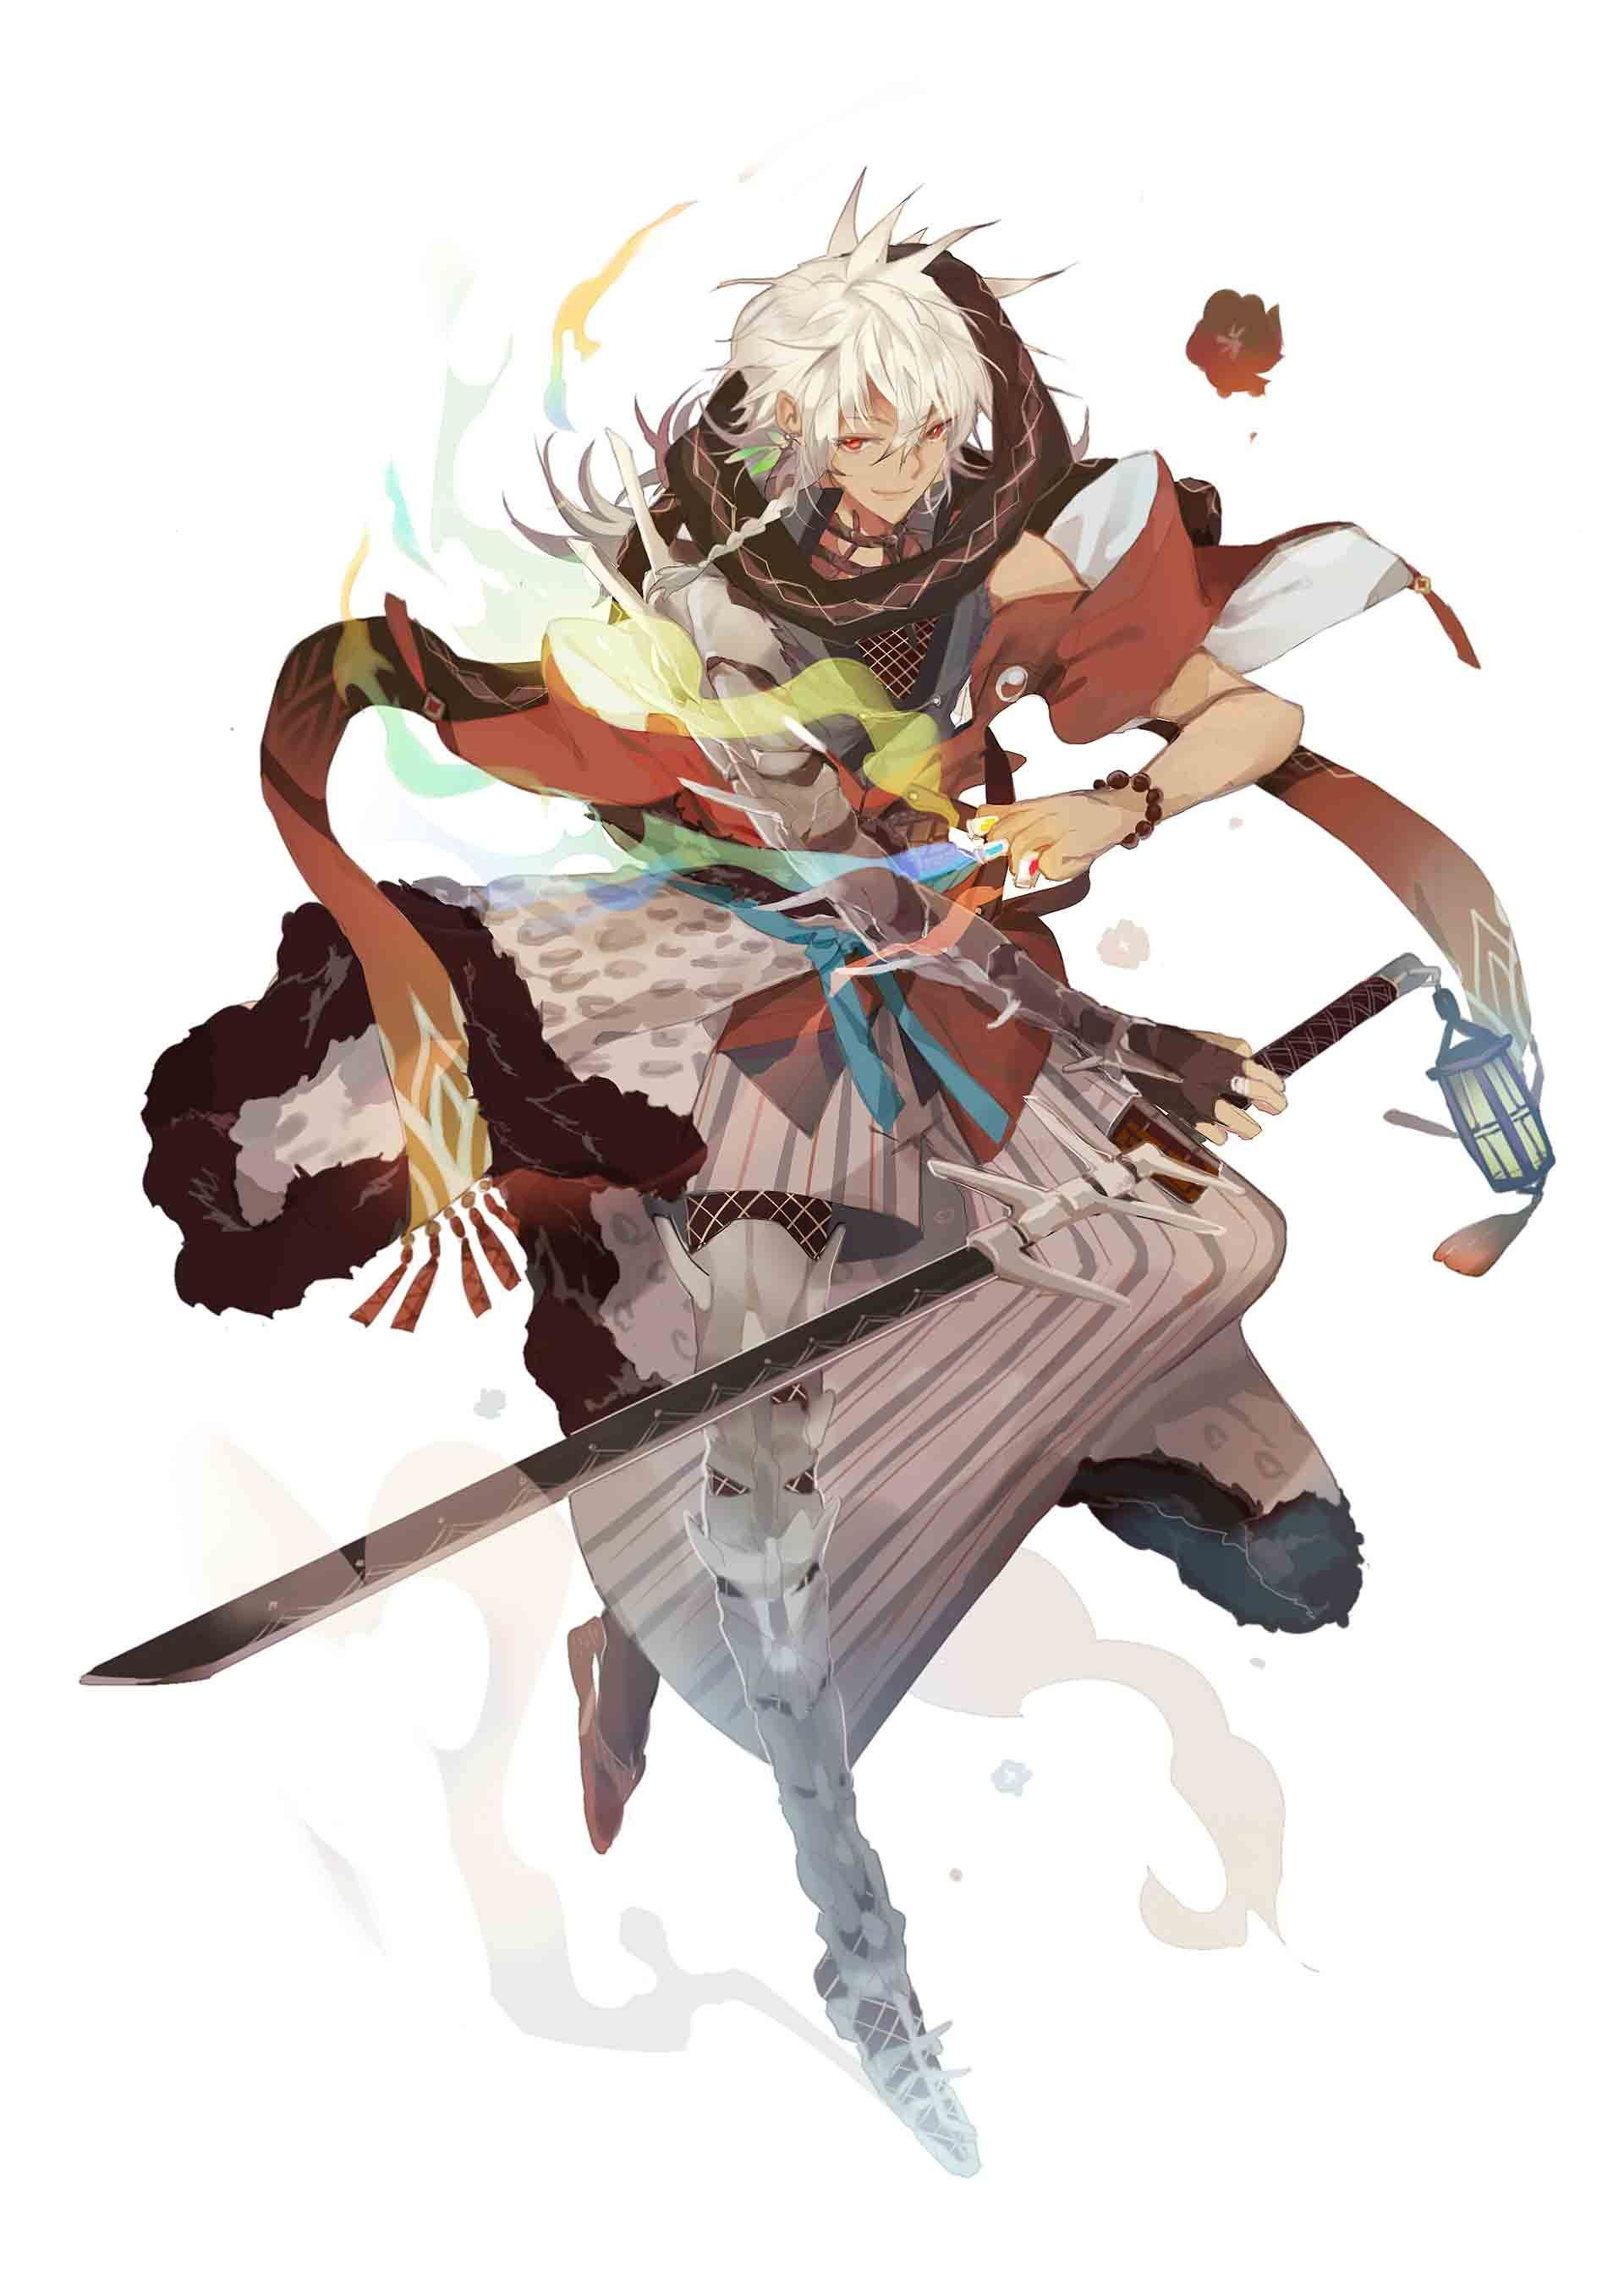 Anime Character Design Contest : Valiant force contest vagabond ronin reference